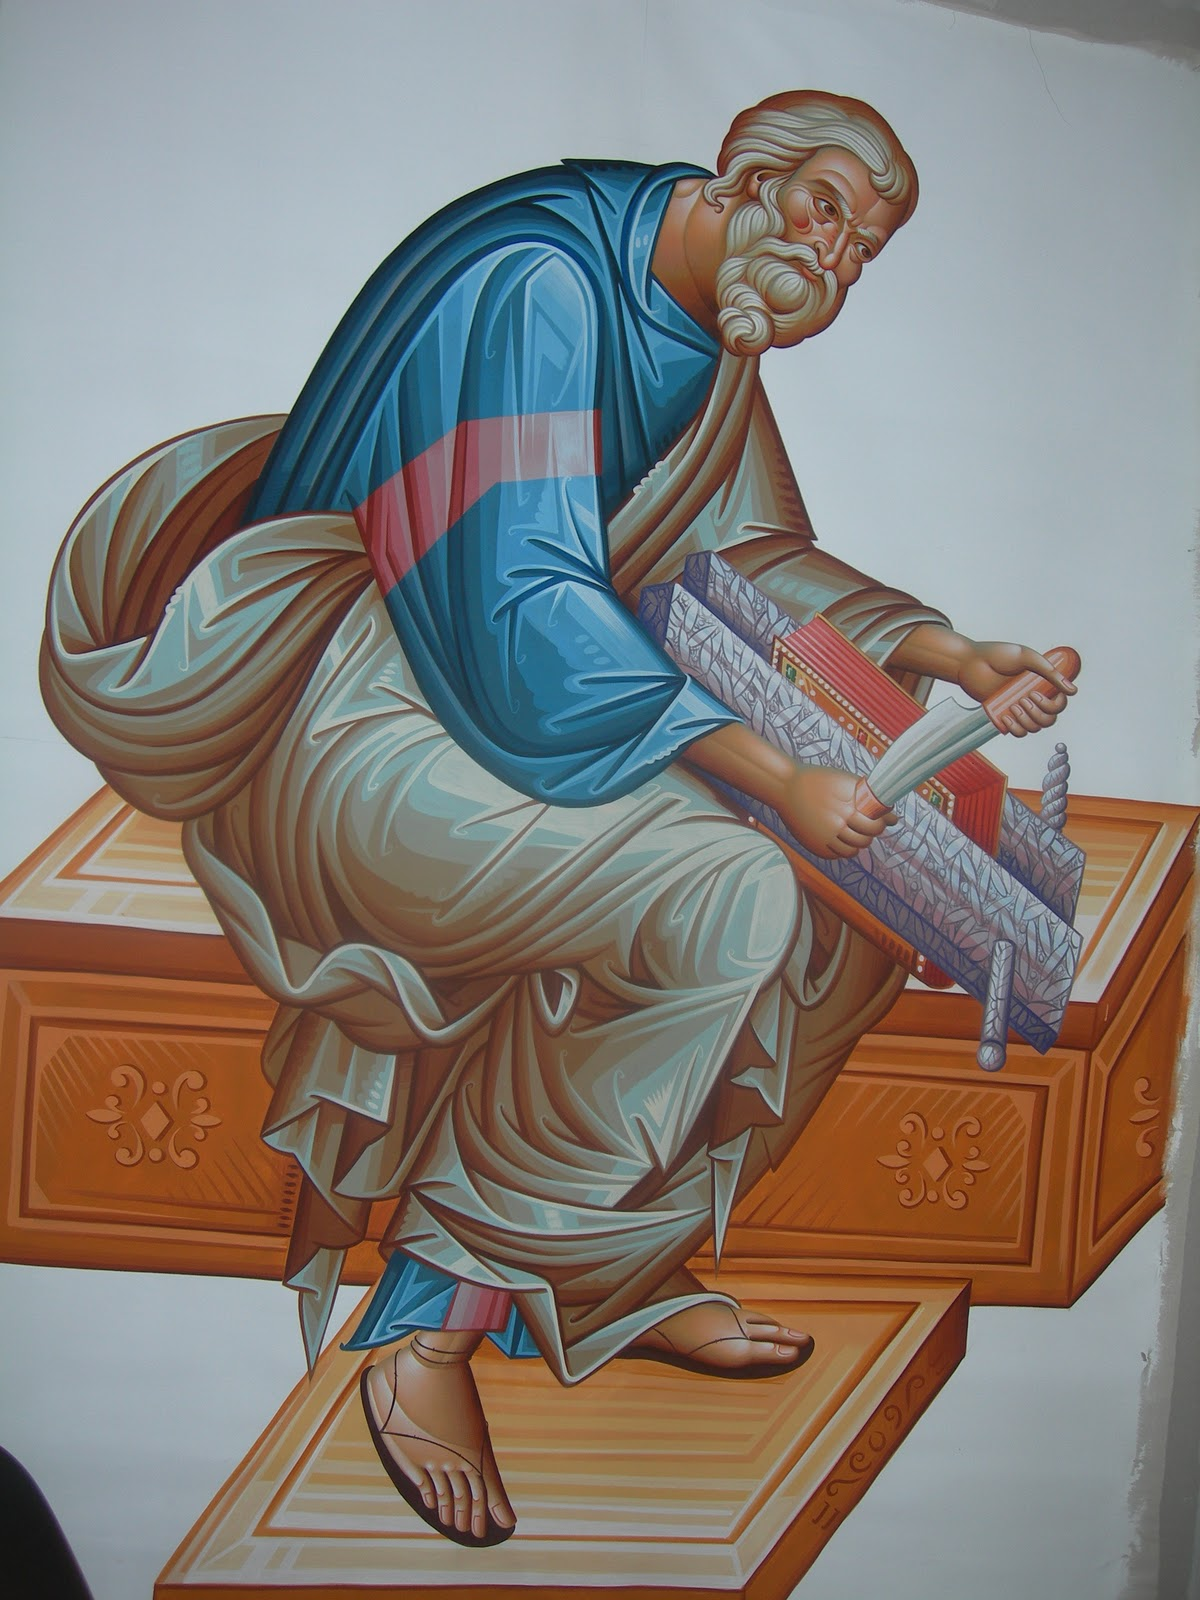 St. Matthew the Apostle and Evangelist